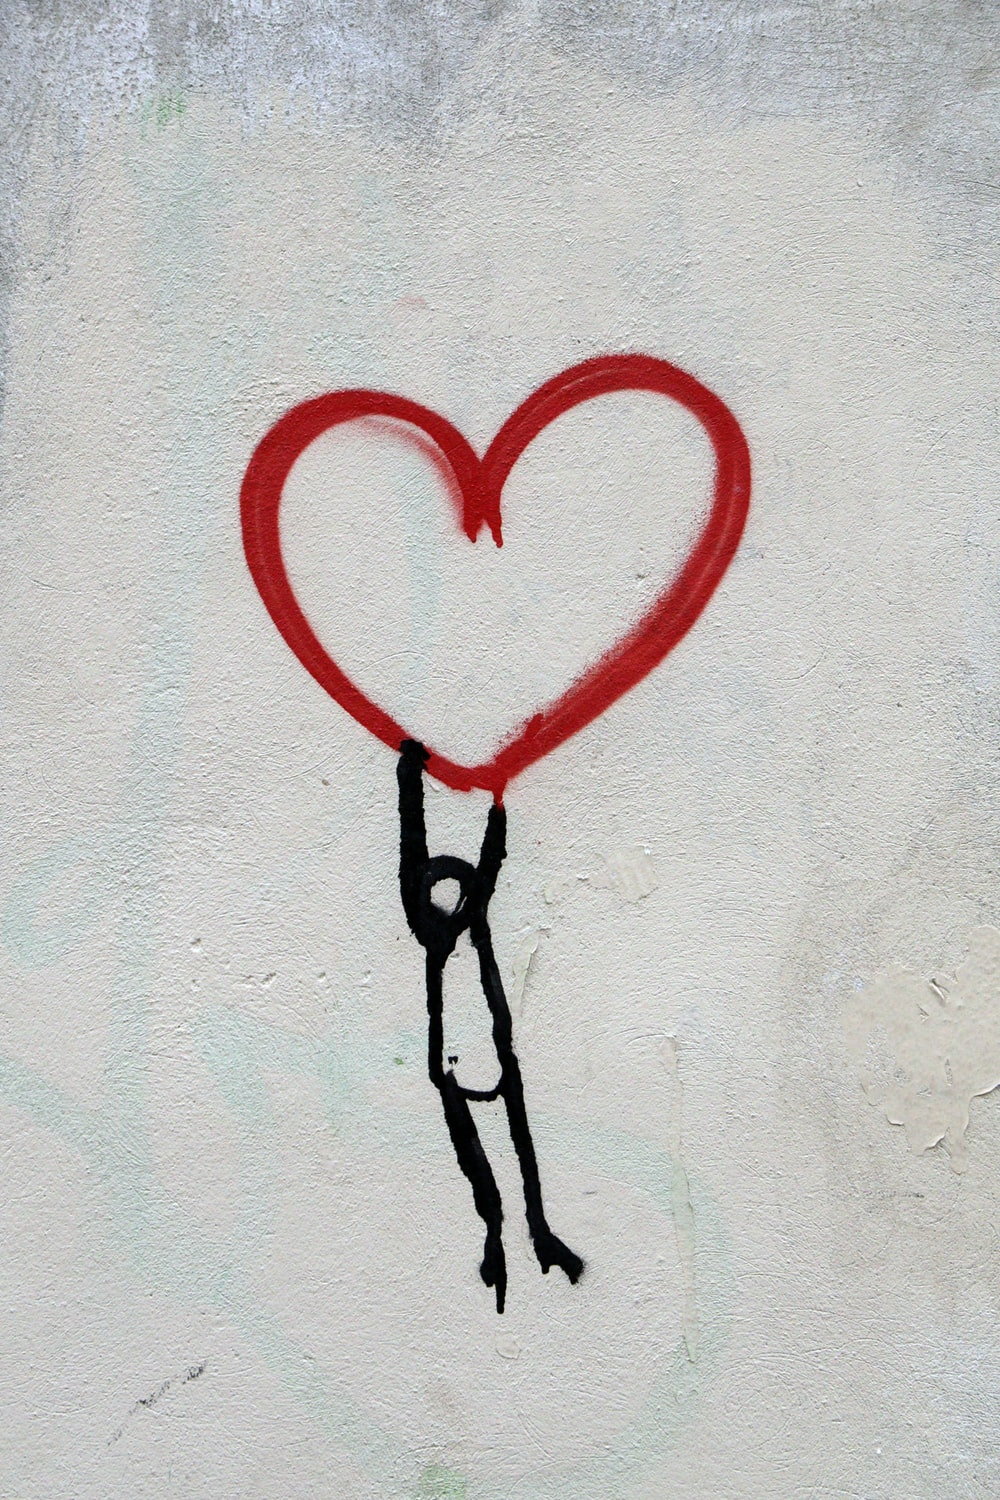 red heart and man hanging drawing